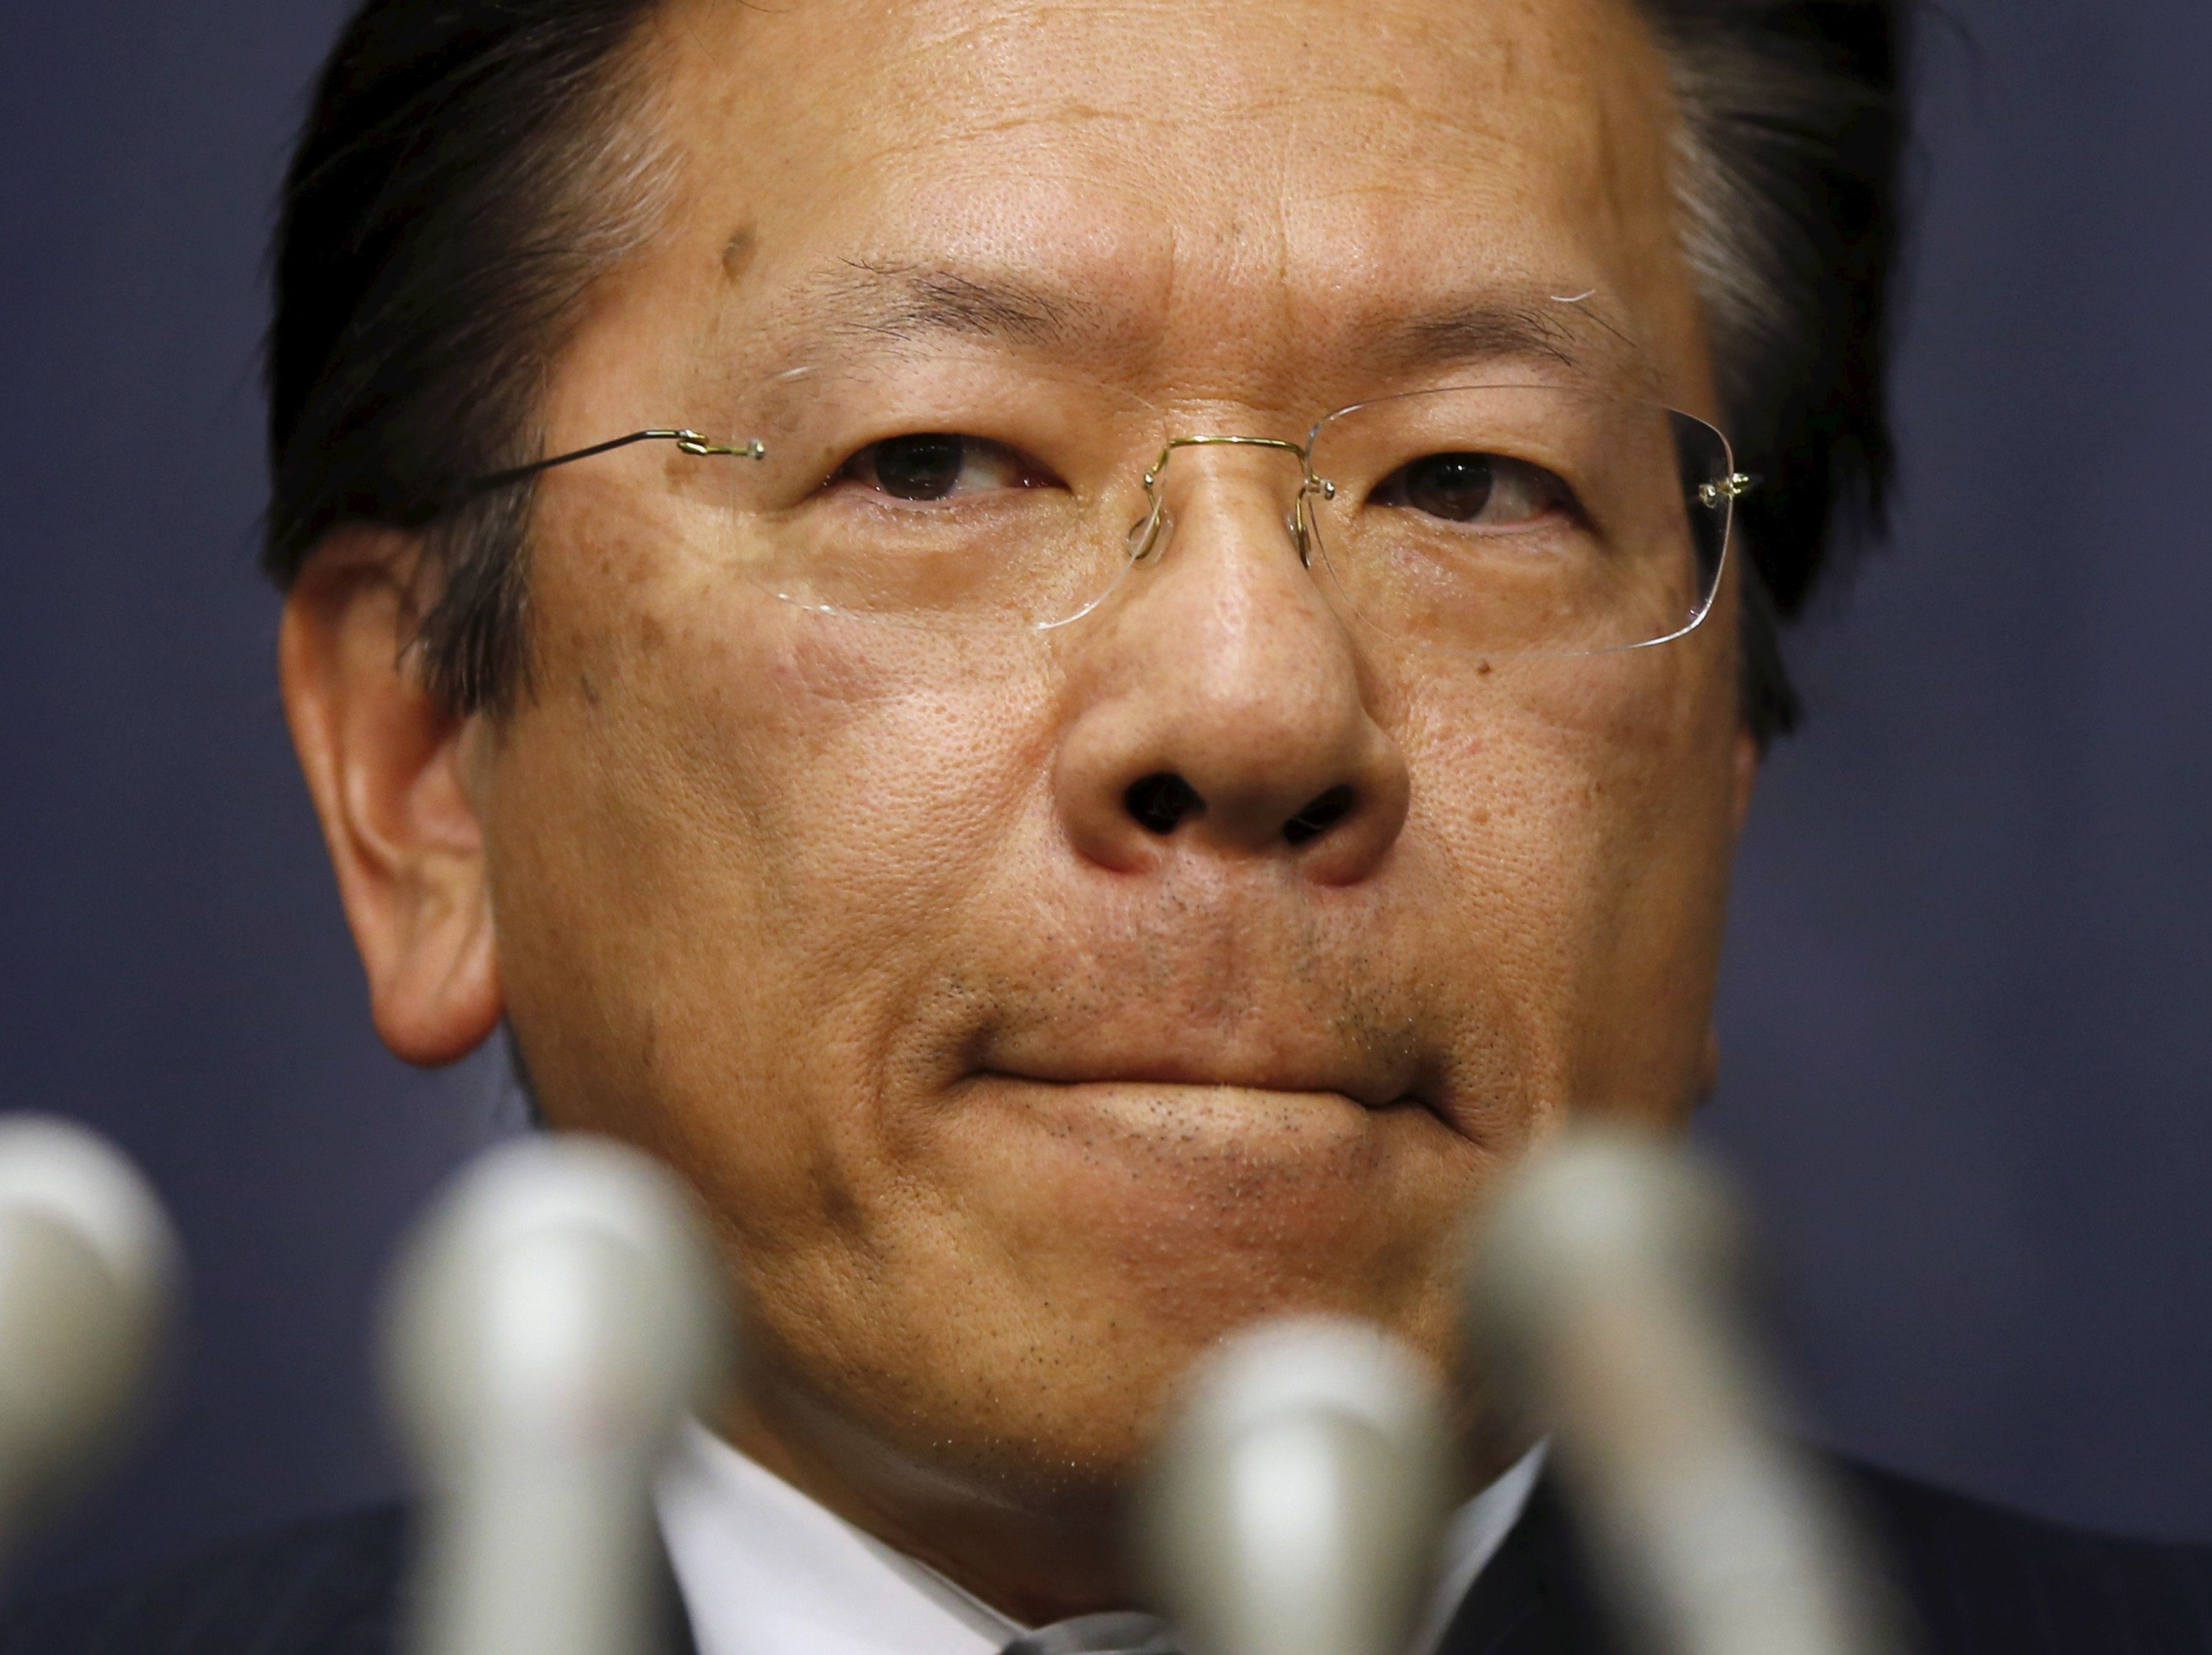 The scandal prompted Tetsuro Aikawa, president ofMitsubishi Motors,to bowin apology at a news conference in